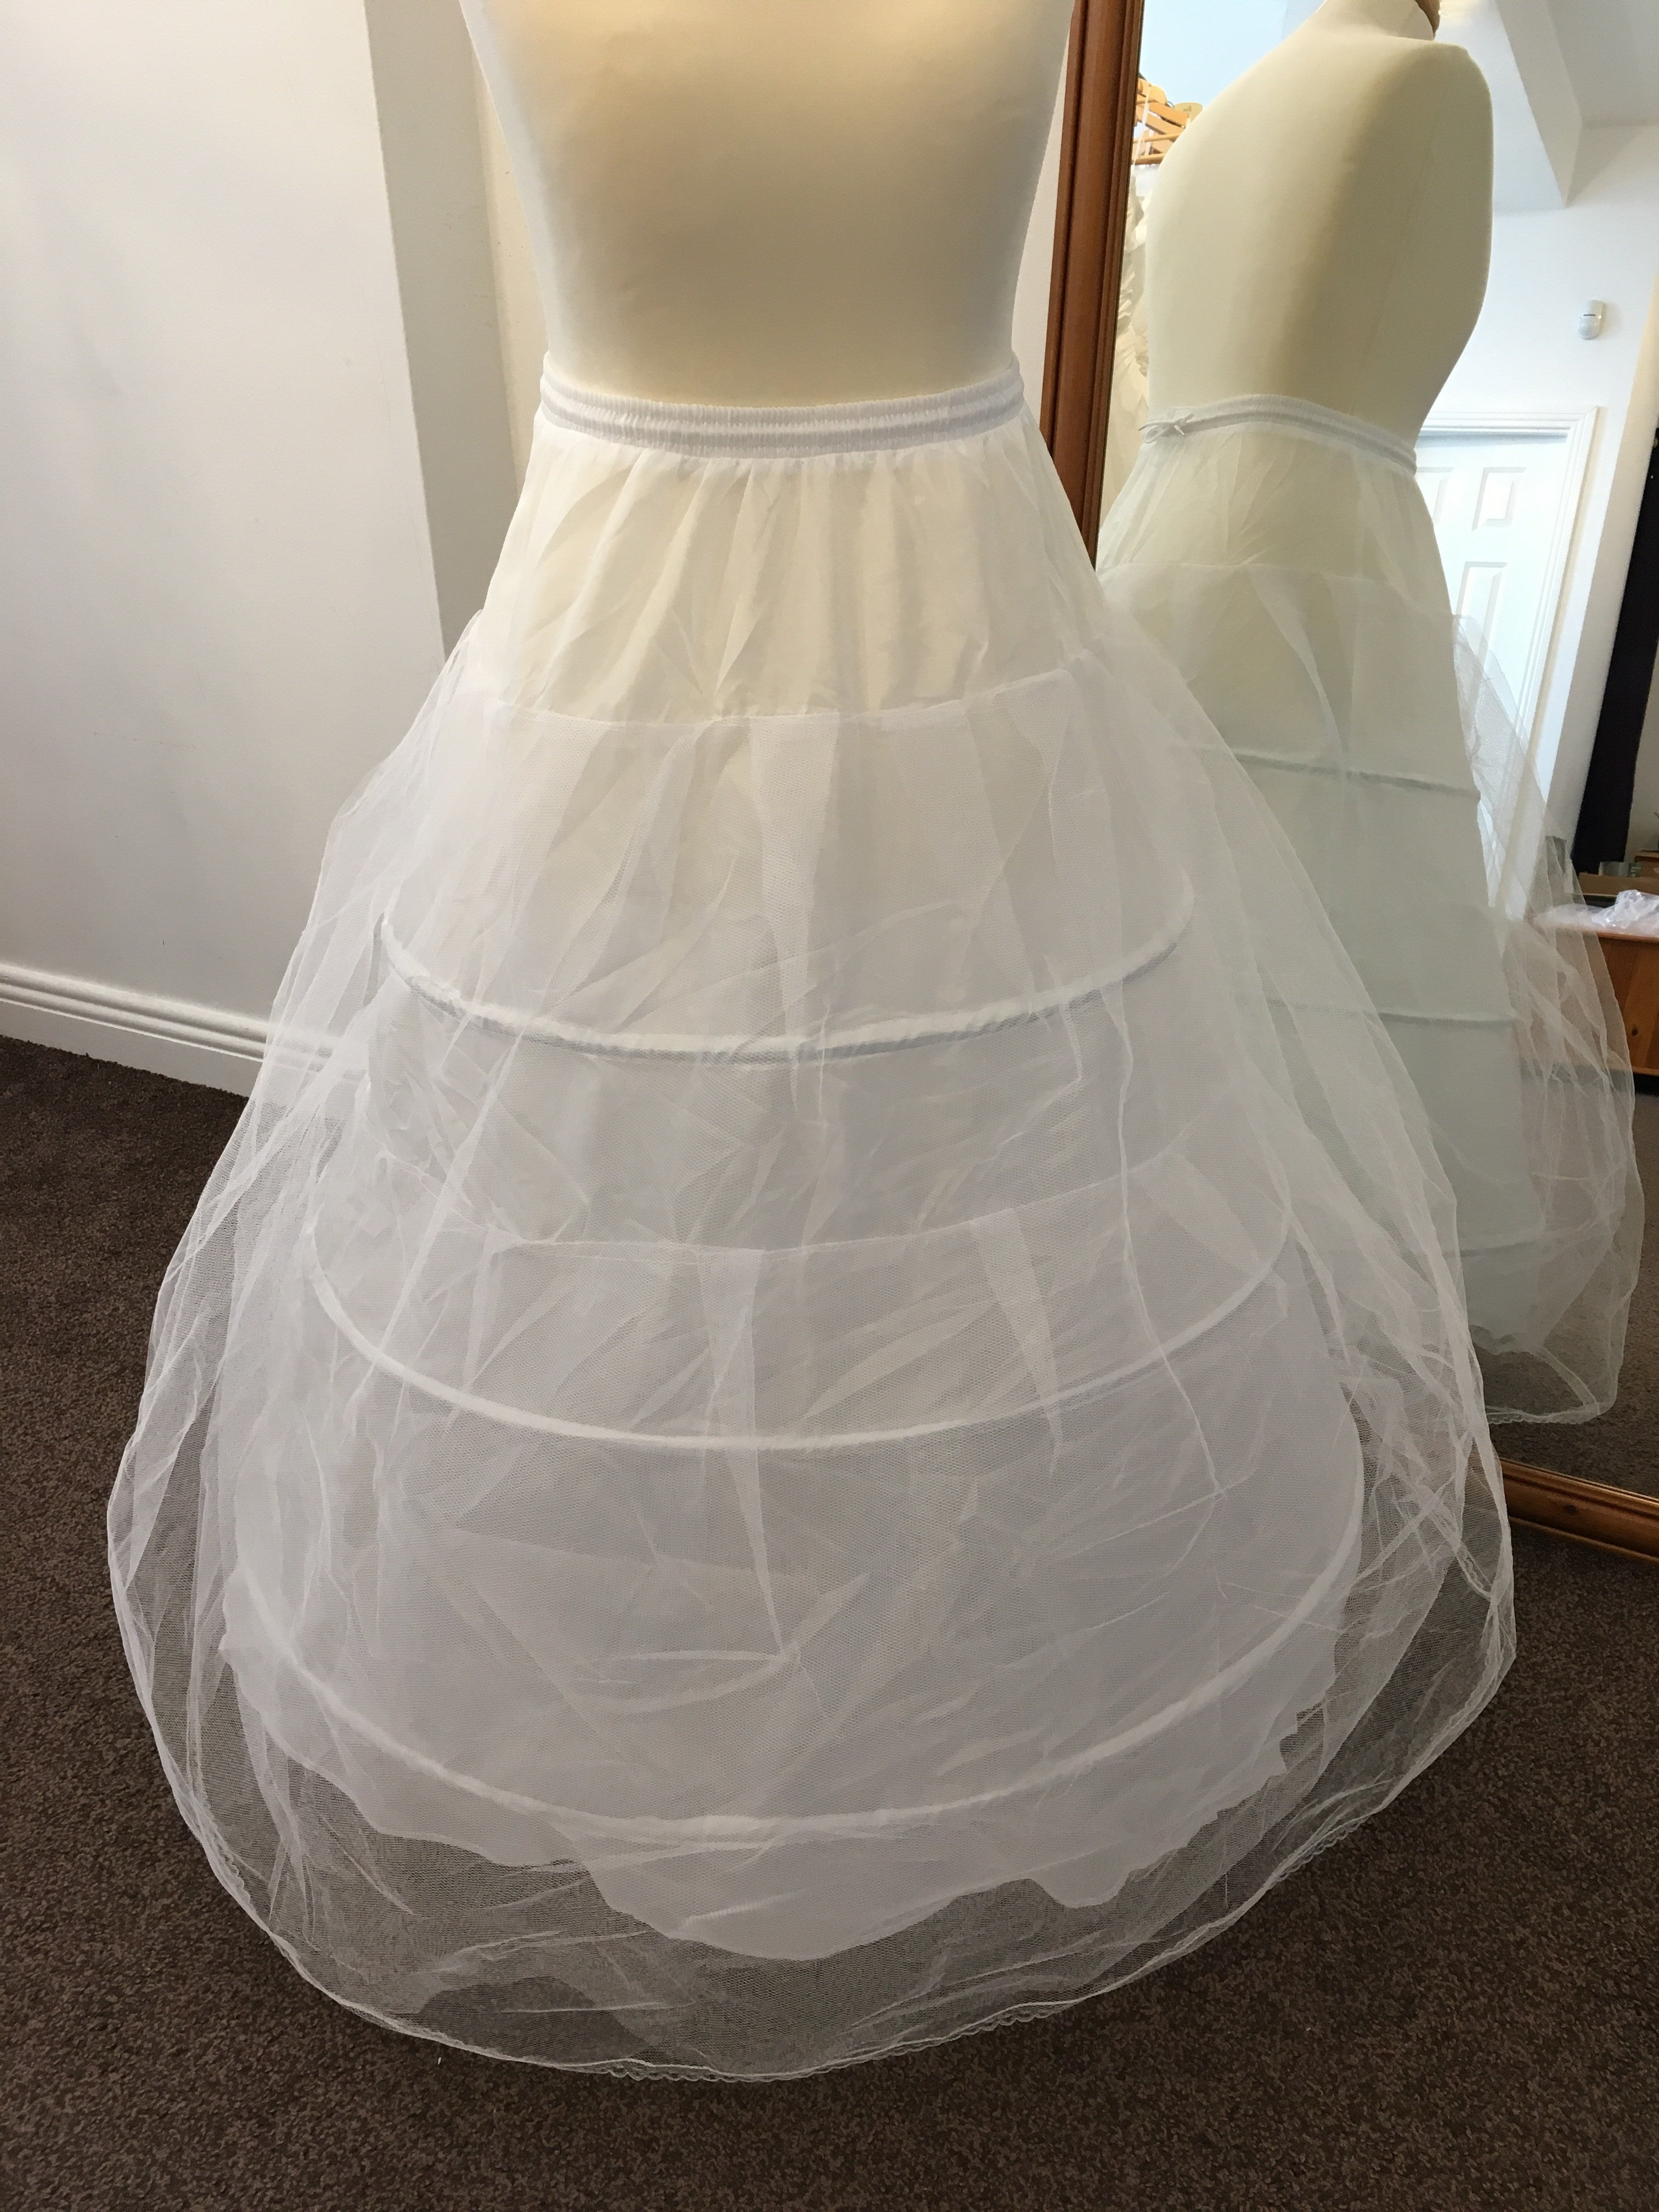 White underskirt with metal hoops – Afford Your Wedding